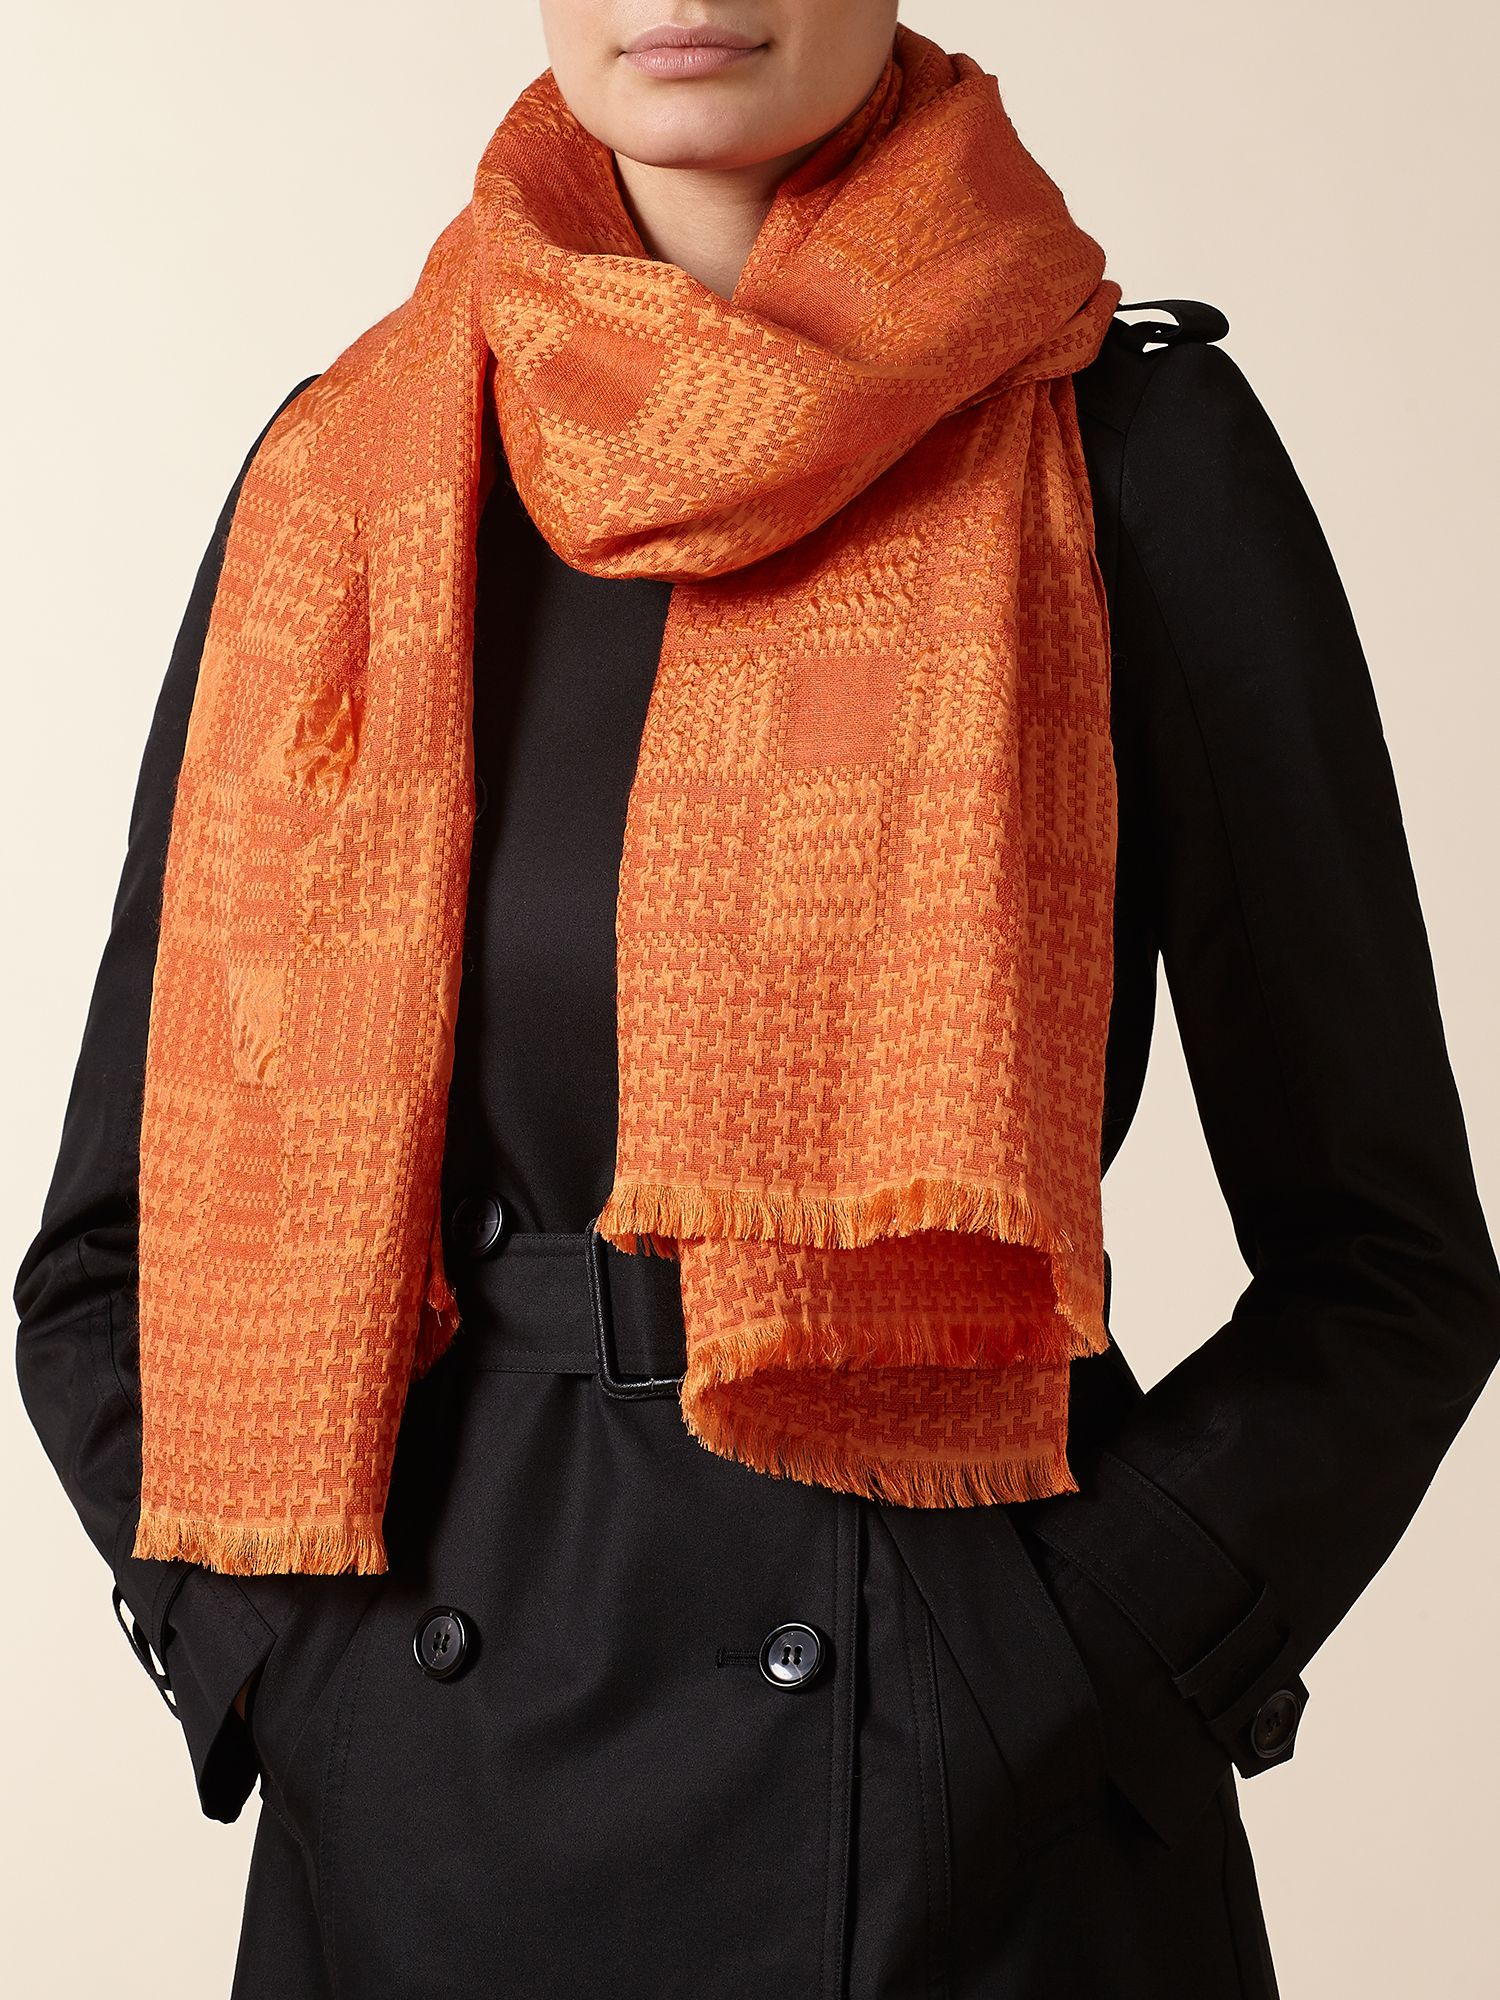 Square and Houndstooth Scarf